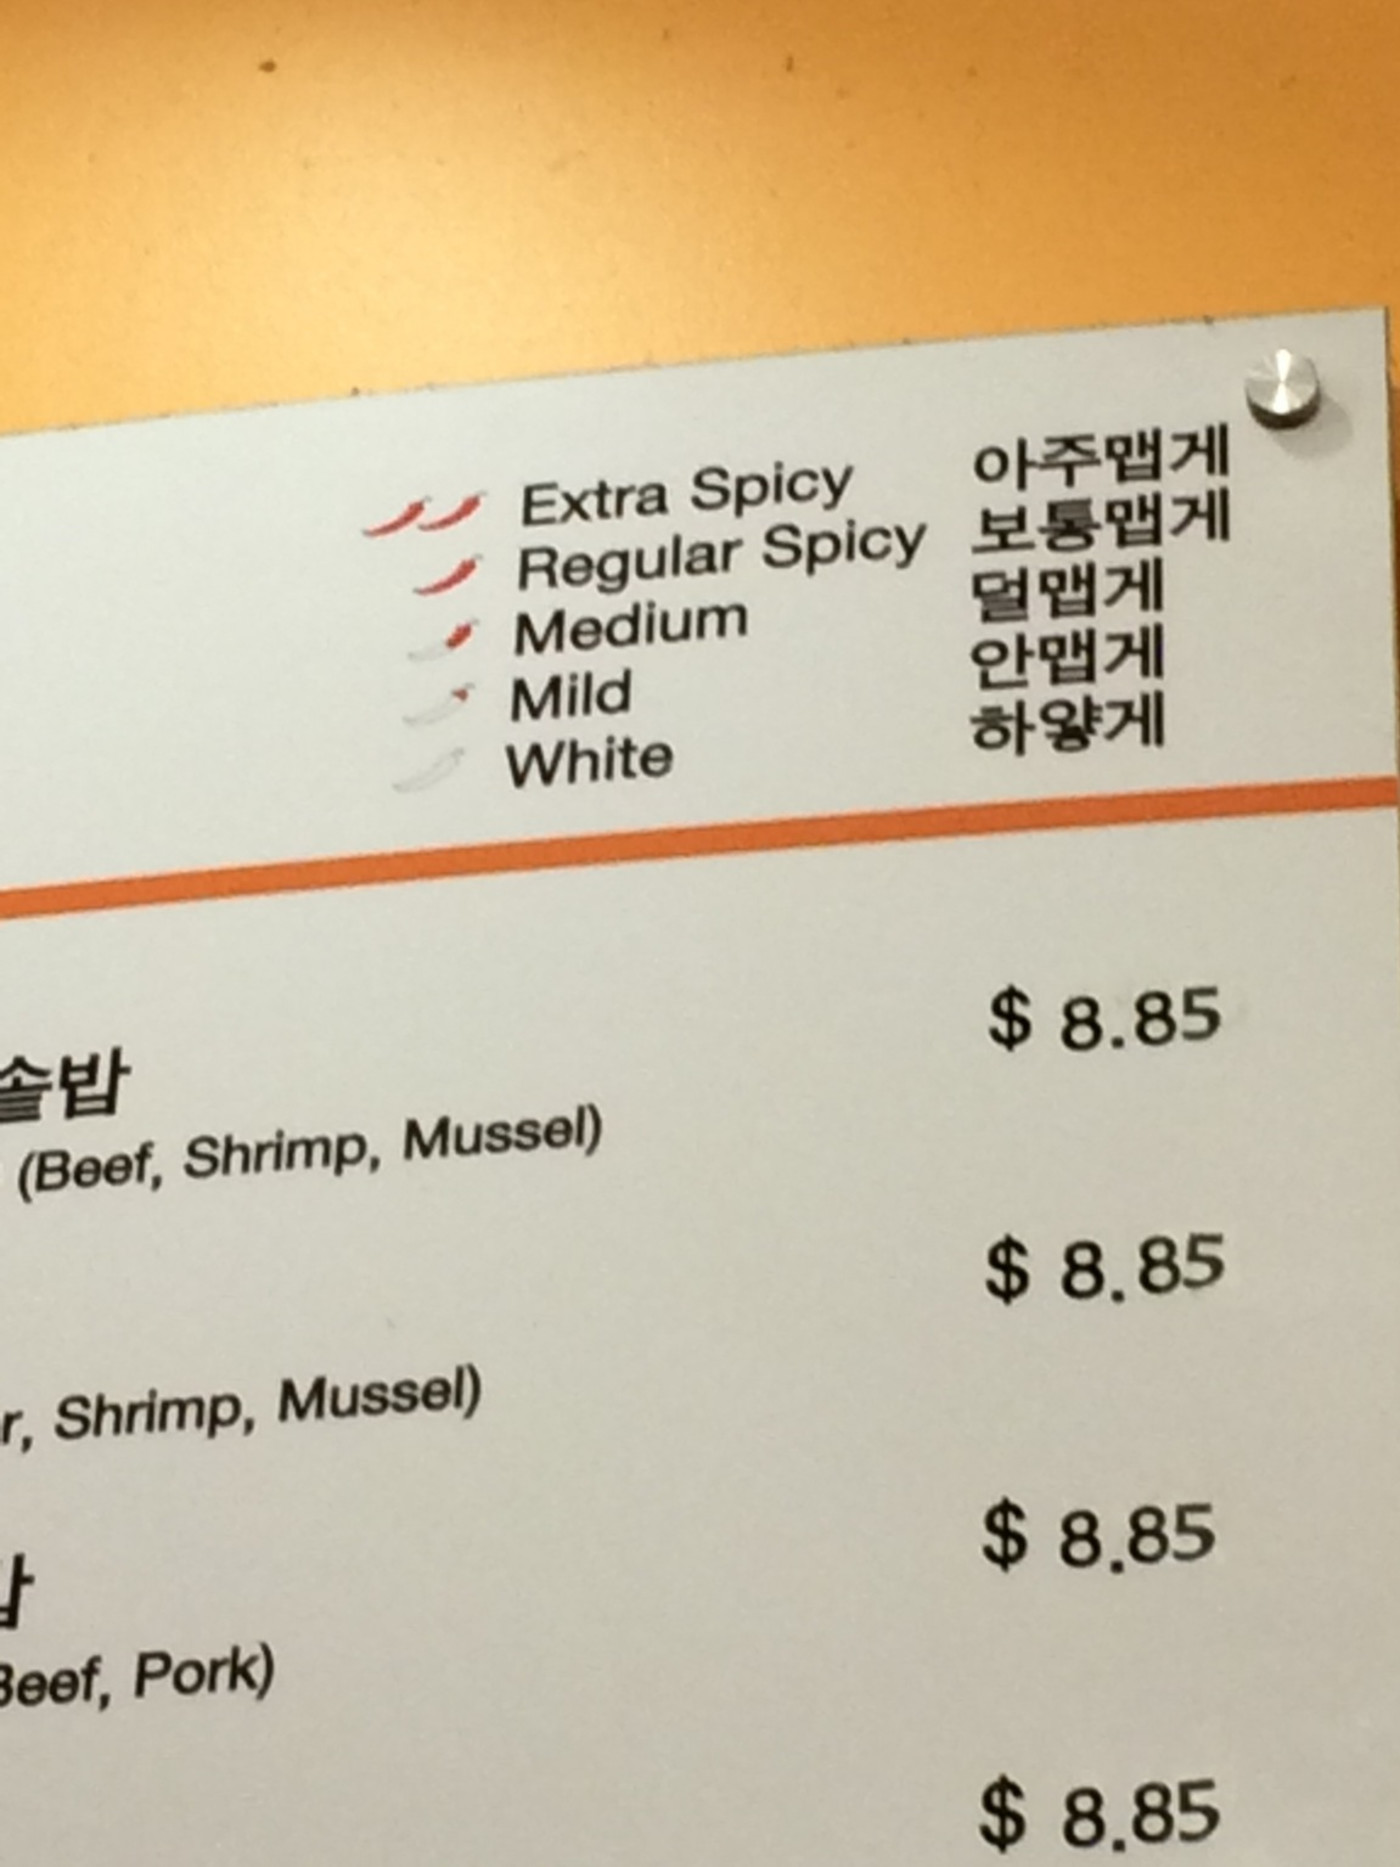 This Toronto Restaurant's Menu Has Gone Viral for Being Allegedly Racist